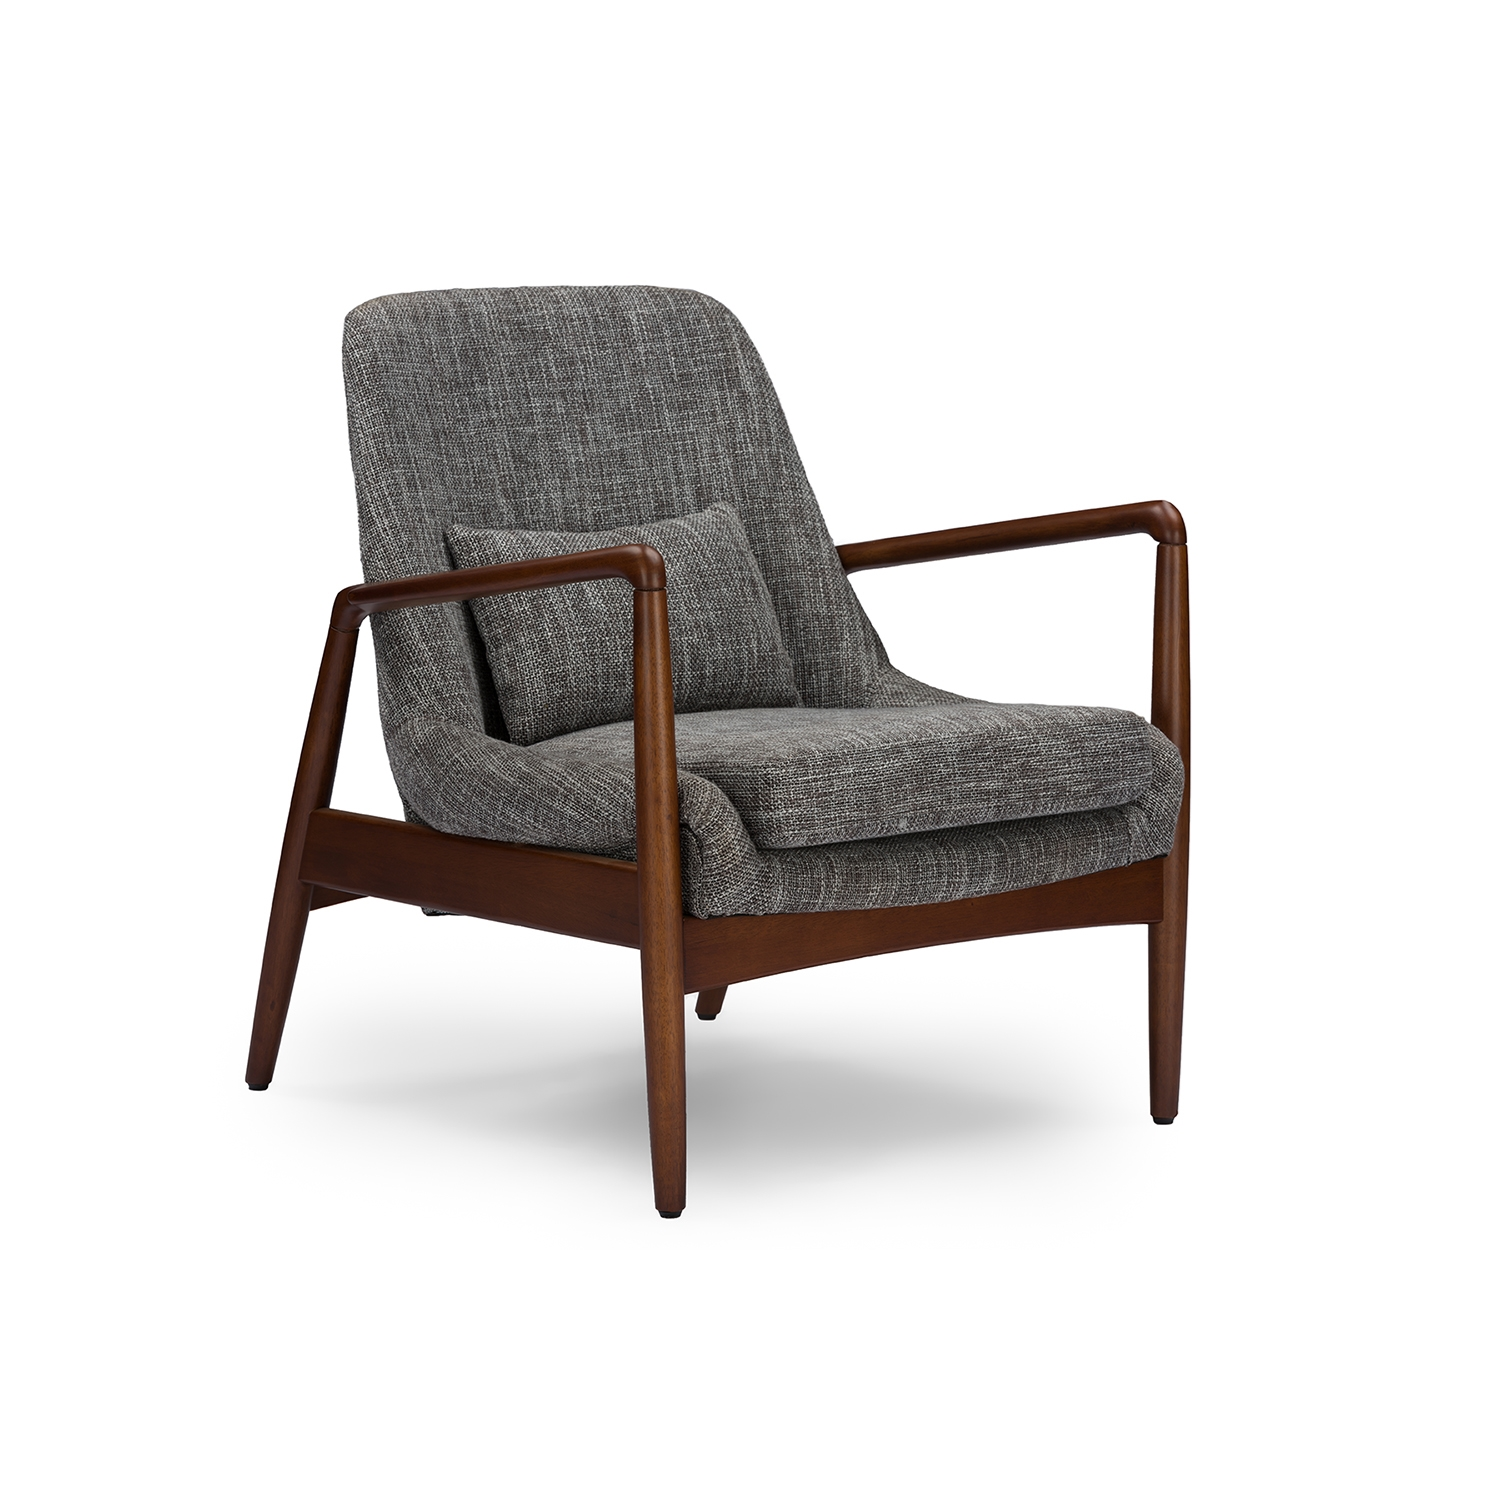 Bon Baxton Studio Carter Mid Century Modern Retro Grey Fabric Upholstered  Leisure Accent Chair In Walnut Wood Frame | Affordable Modern Design |  Baxton Studio